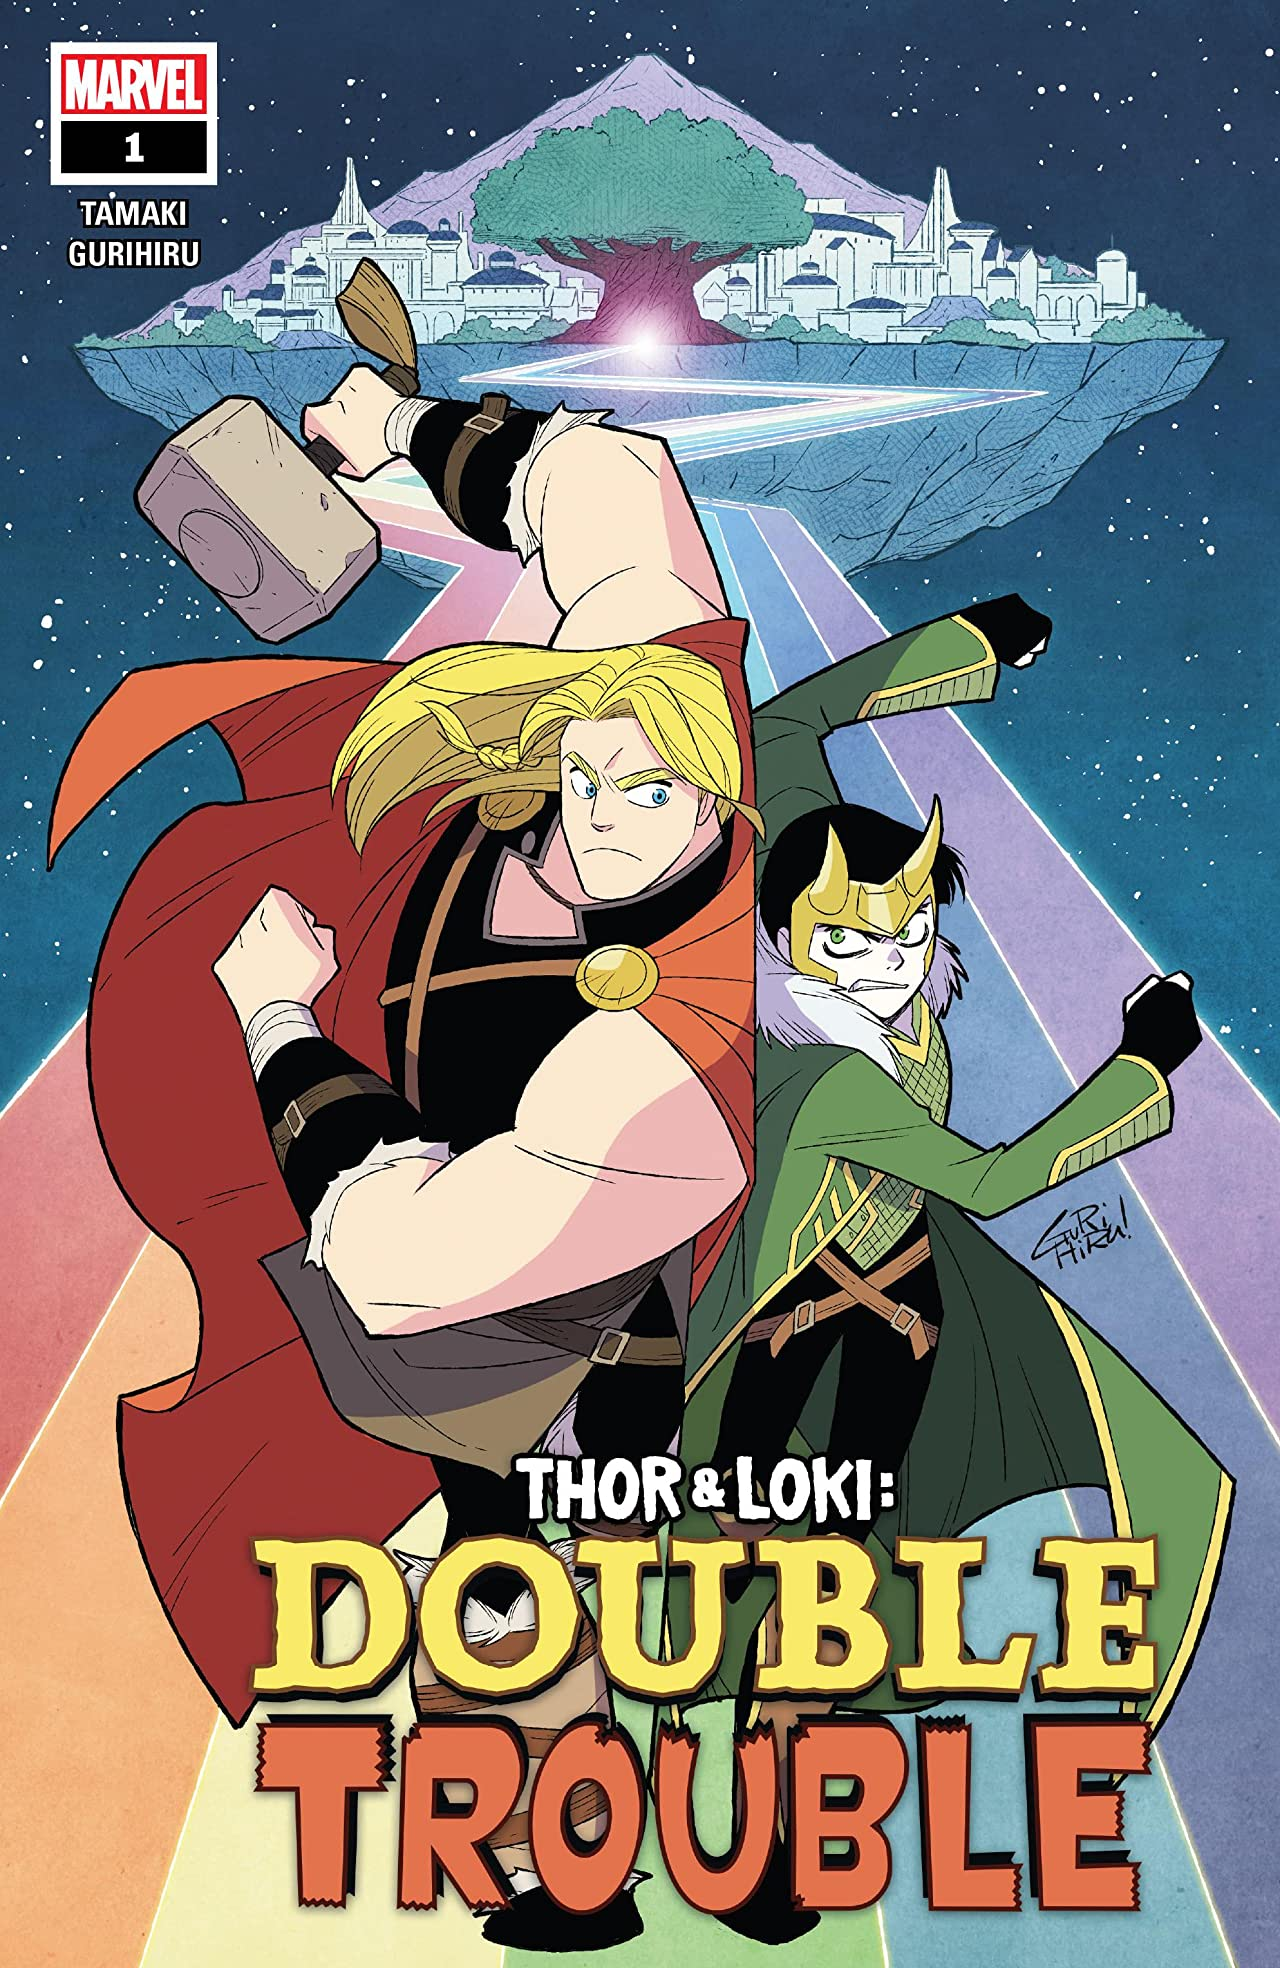 Comic completo Thor and Loki: Double Trouble